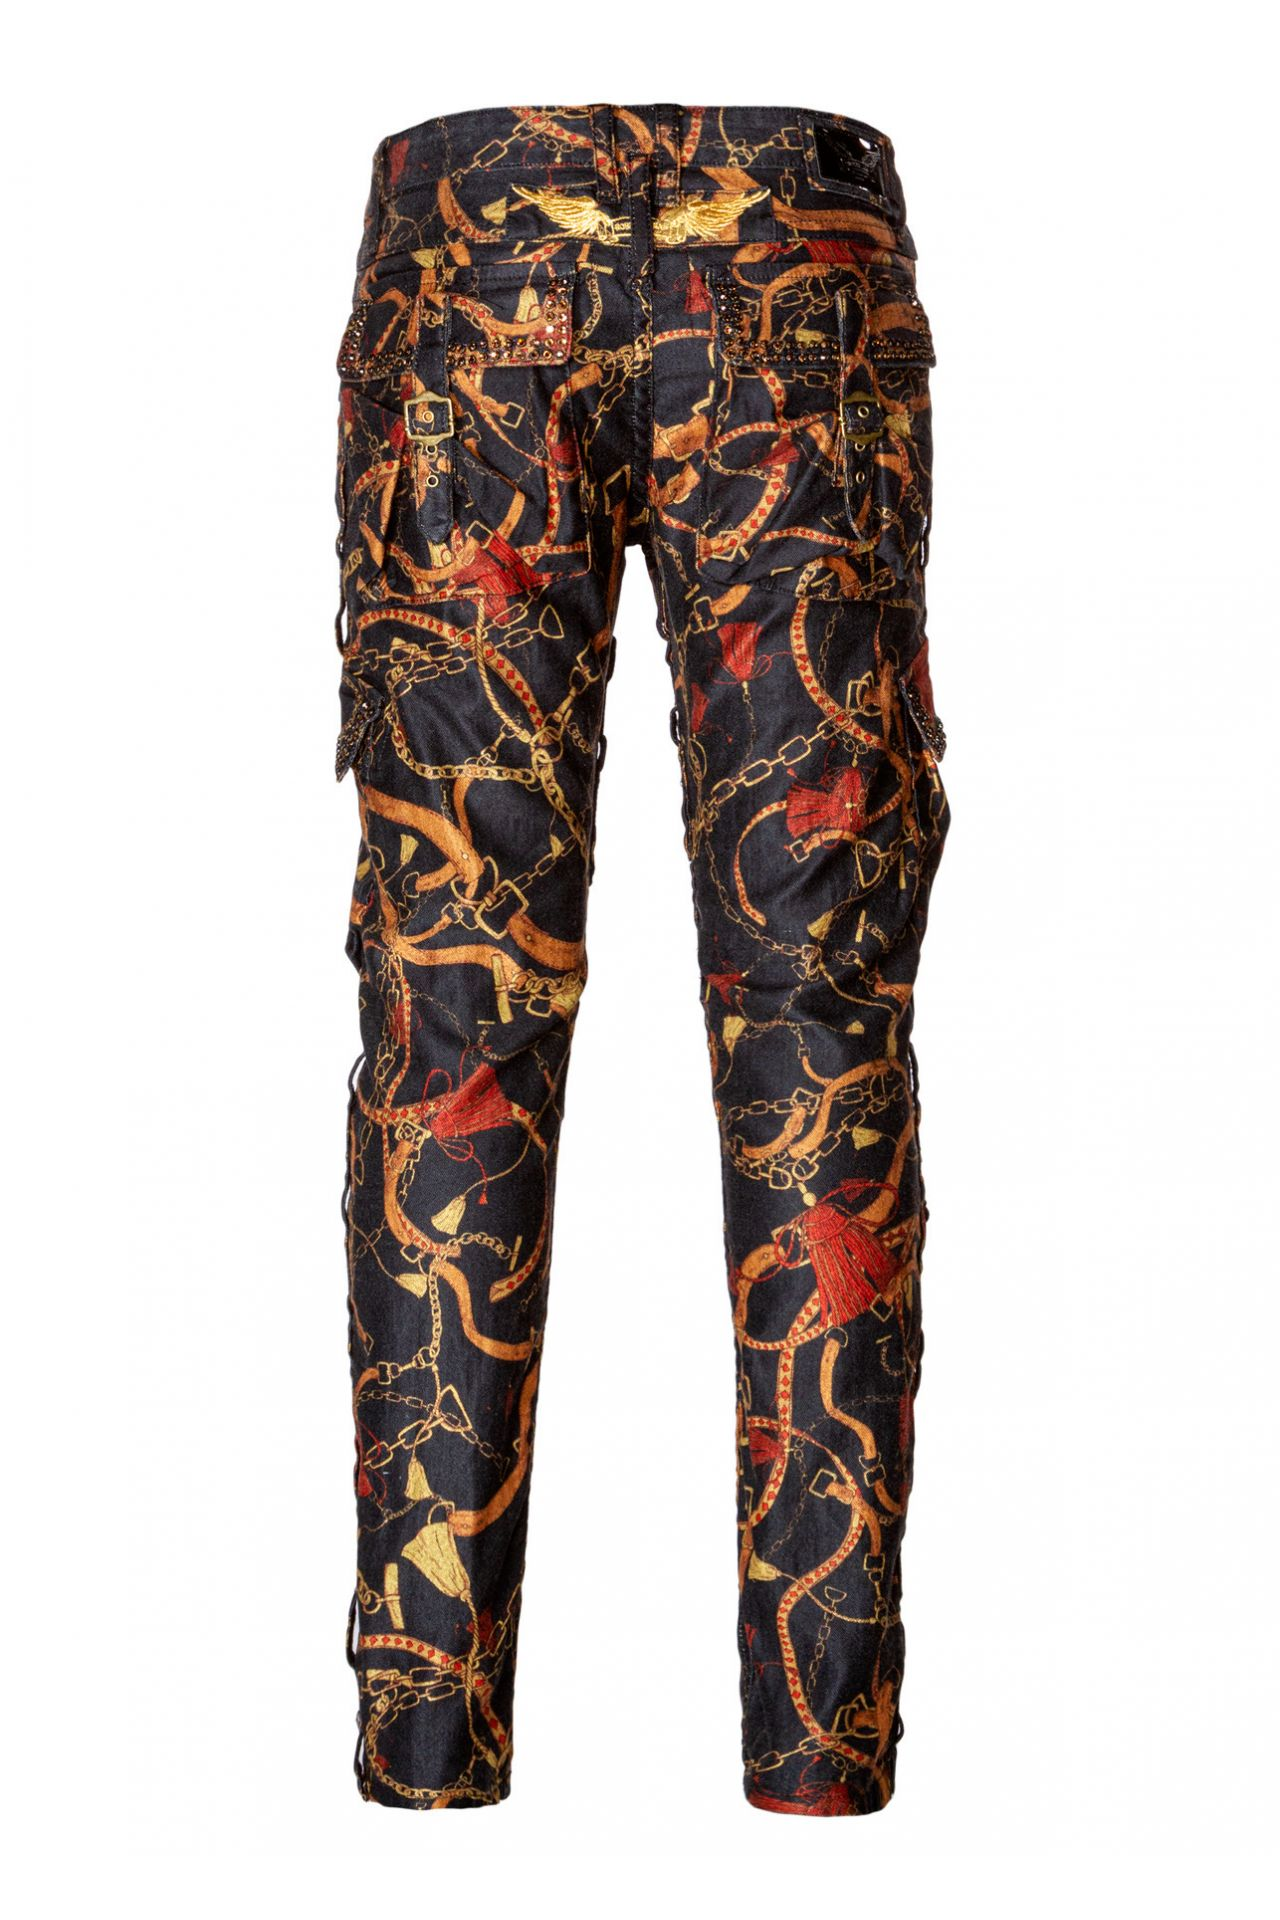 LIMITED EDITION EQUESTRIAN CARGO PANTS WITH CRYSTALS